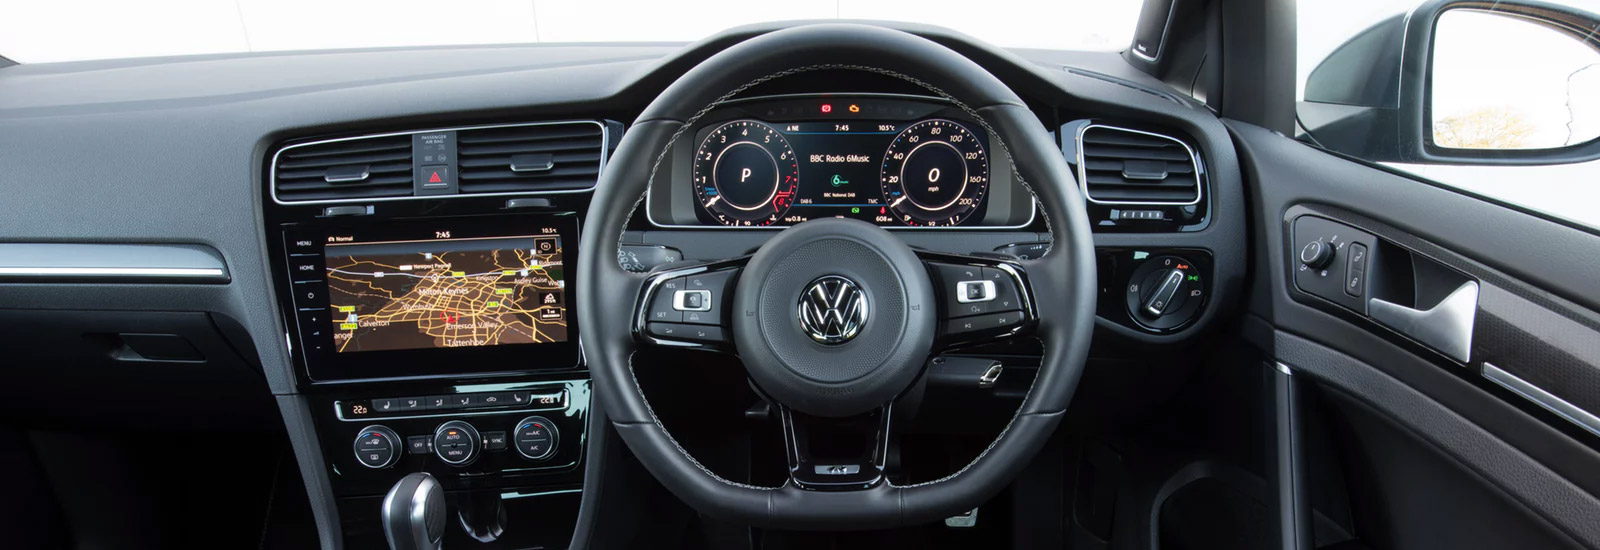 mk8 golf r 2020 vw golf r price specs and release date  [ 1600 x 550 Pixel ]